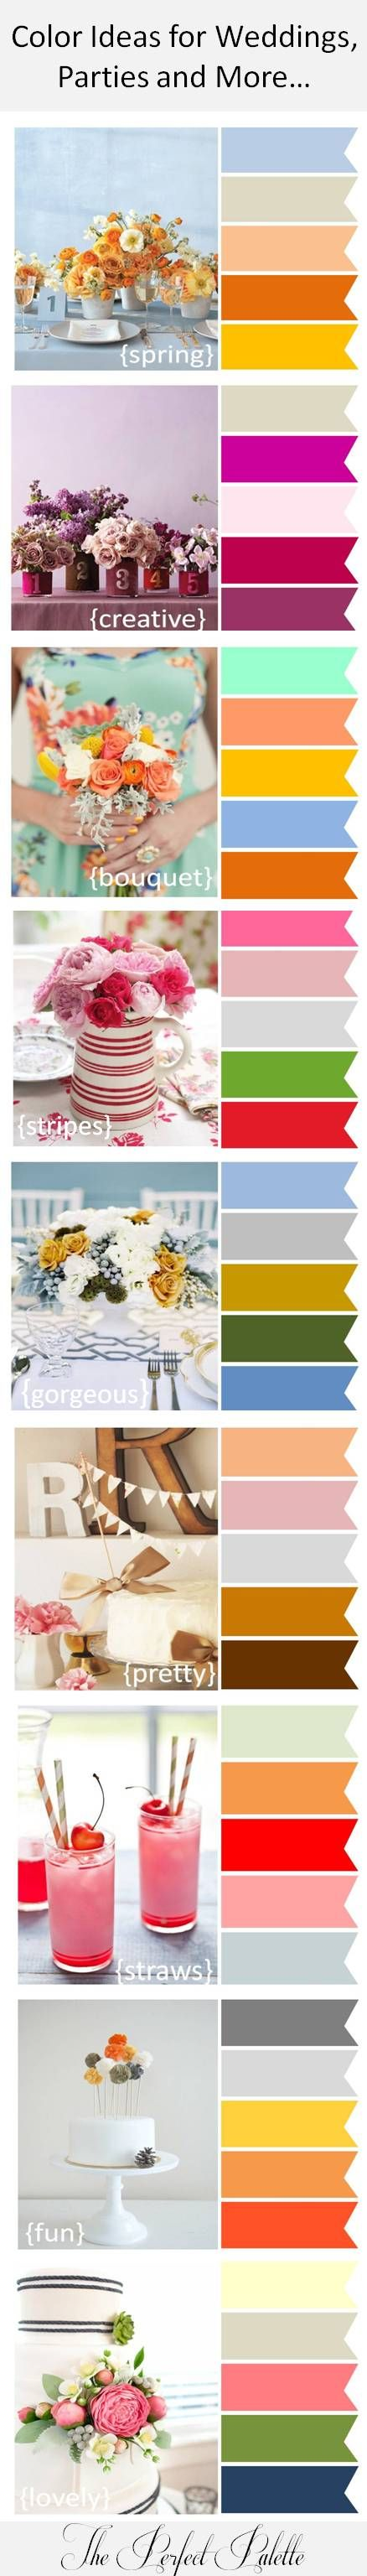 Color Ideas for Weddings, Parties and More... http://www.theperfectpalette.com/2012/09/color-ideas-for-weddings-parties-and.html